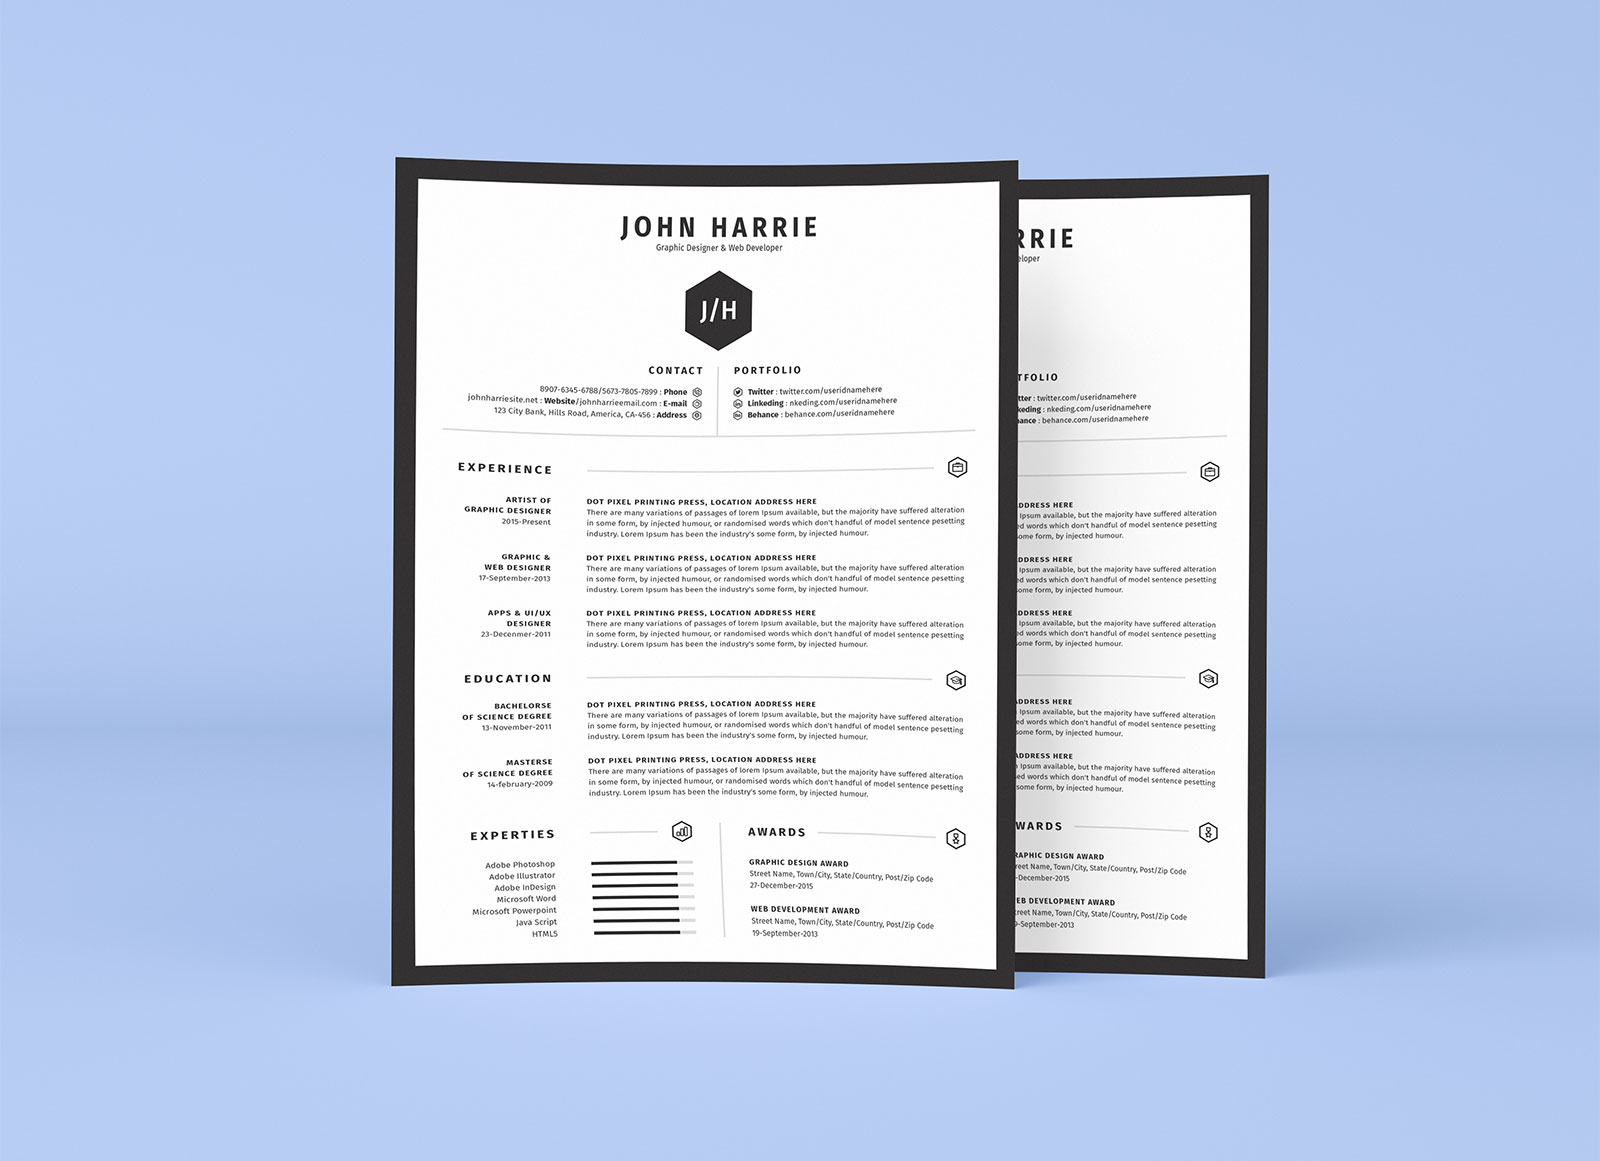 free clean resume cv  u0026 cover letter template in word  psd  u0026 ai